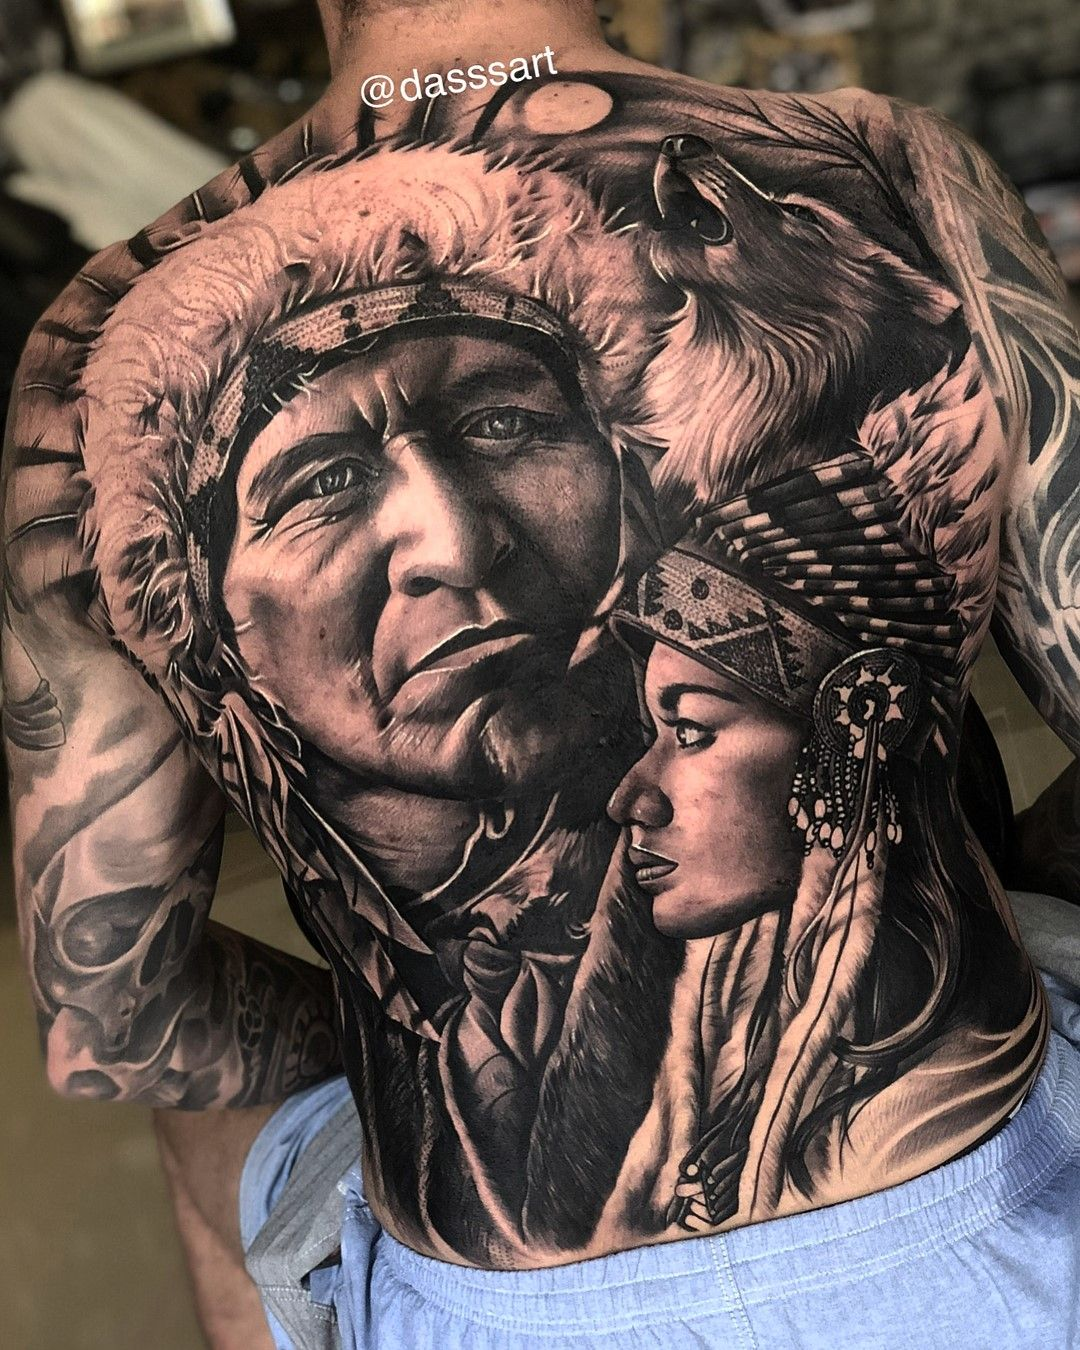 Take A Look At Newest Tattoo Shirt Credit By Dasssart Follow Me To Explore More Inspirationa Native American Tattoos Native Indian Tattoos Indian Tattoo